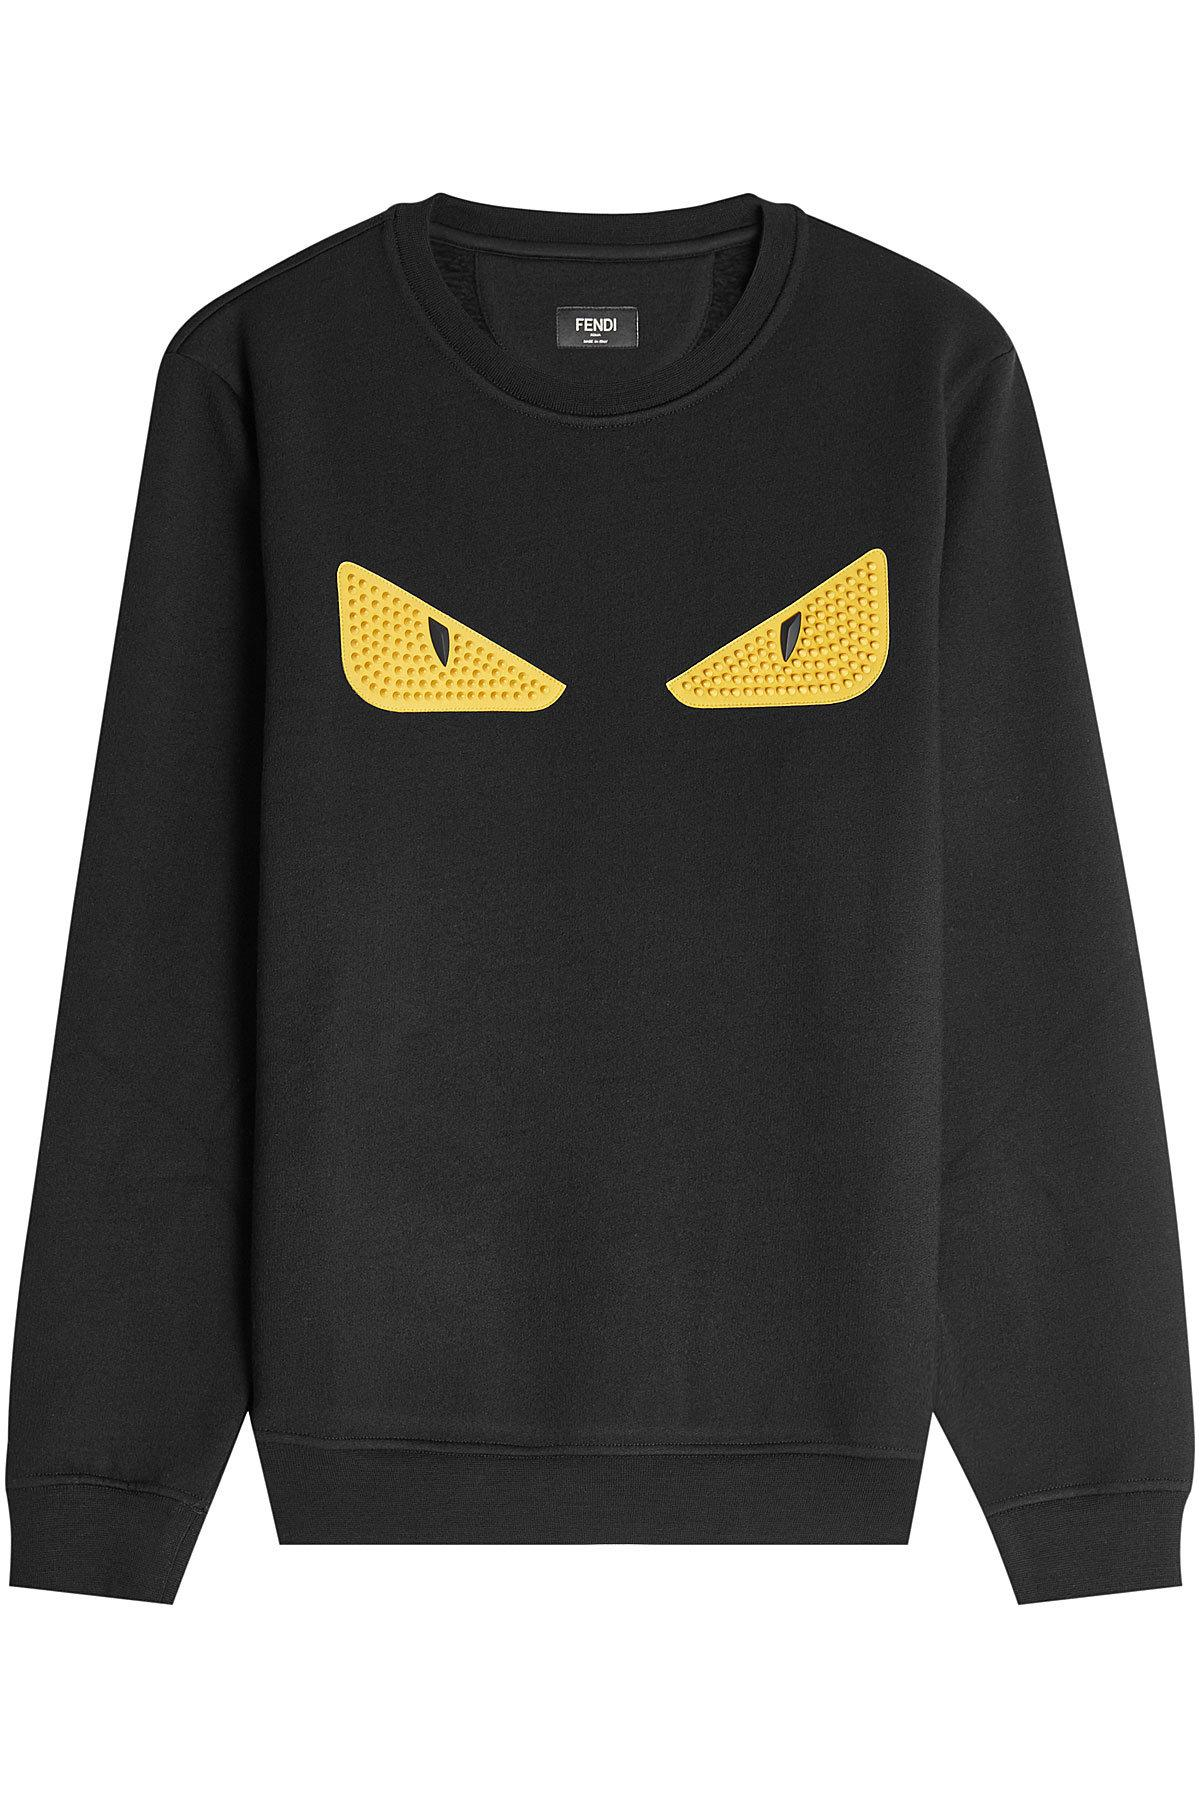 Fendi Embellished Sweatshirt In Wool And Cotton With Leather Eyes In Black